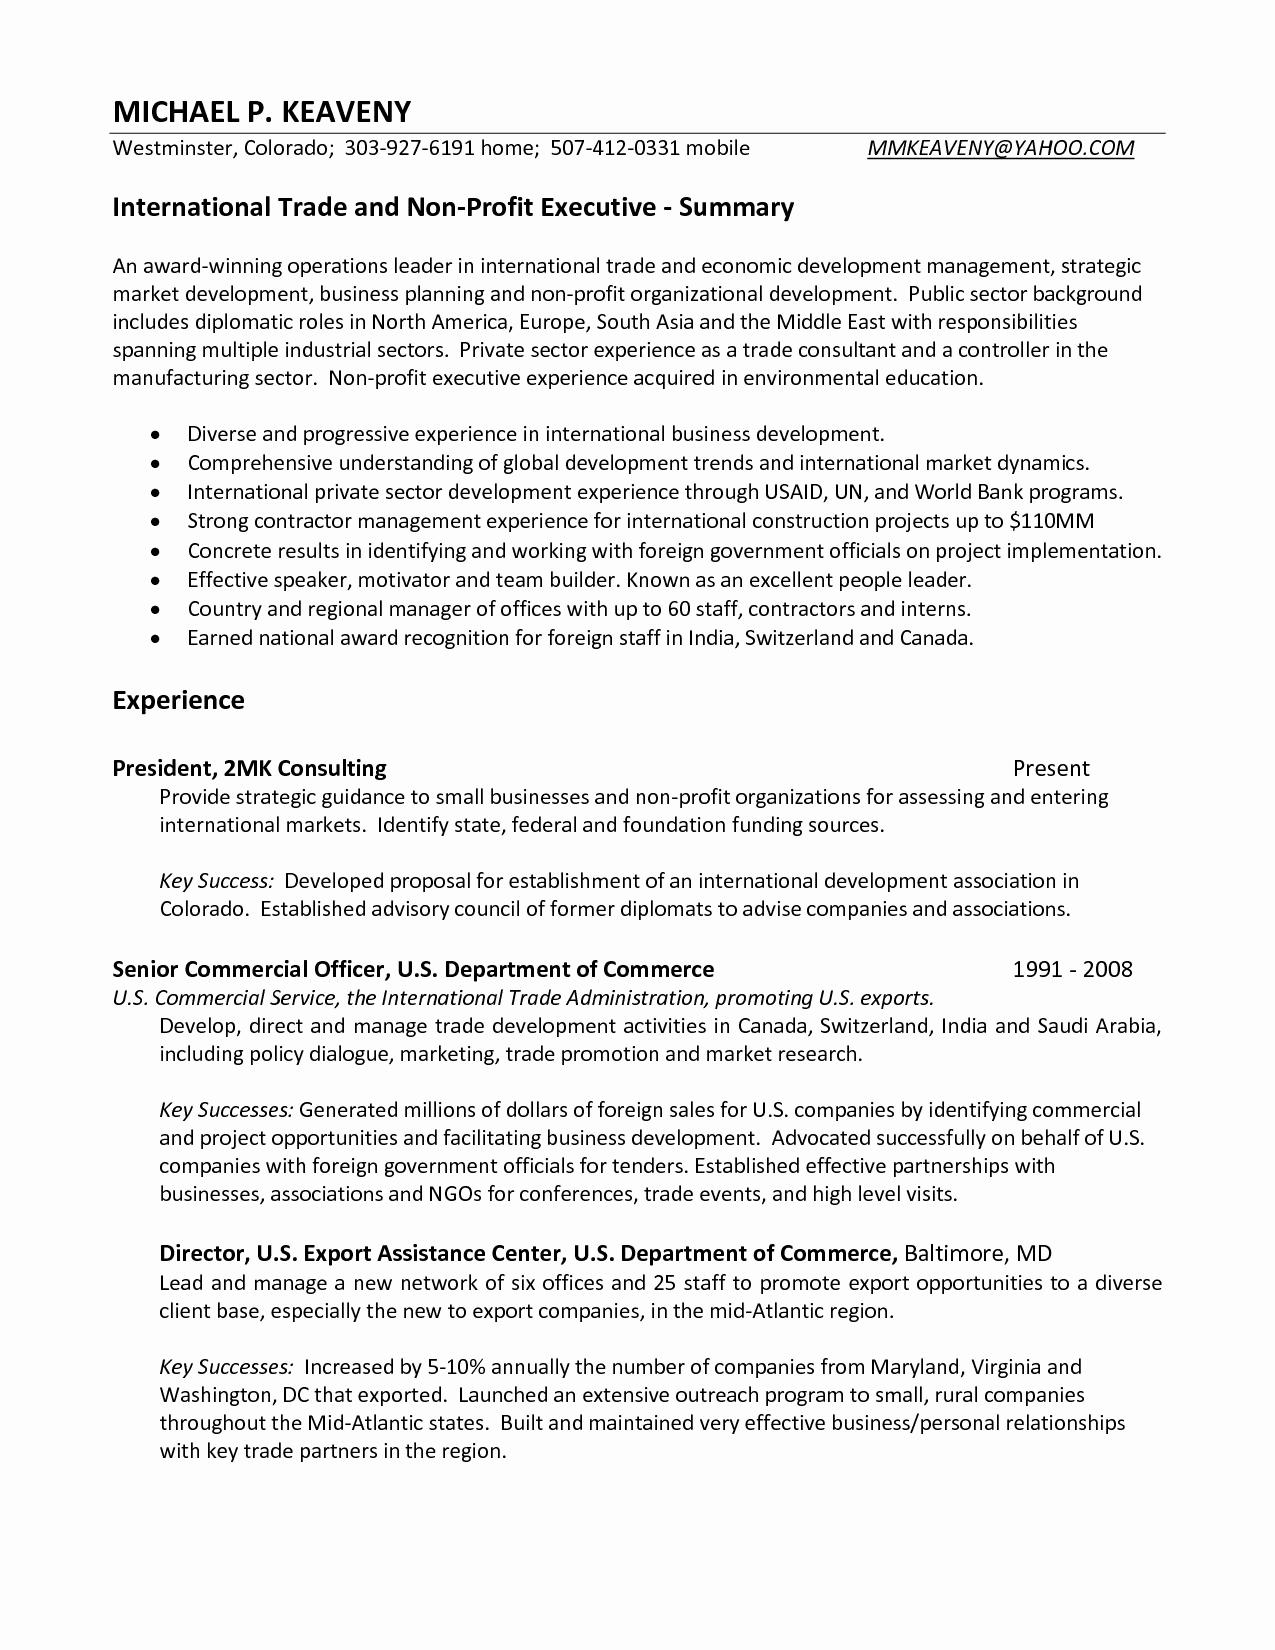 Recent Graduate Resume - Business Resume Examples Fresh Resume or Cv Unique American Resume